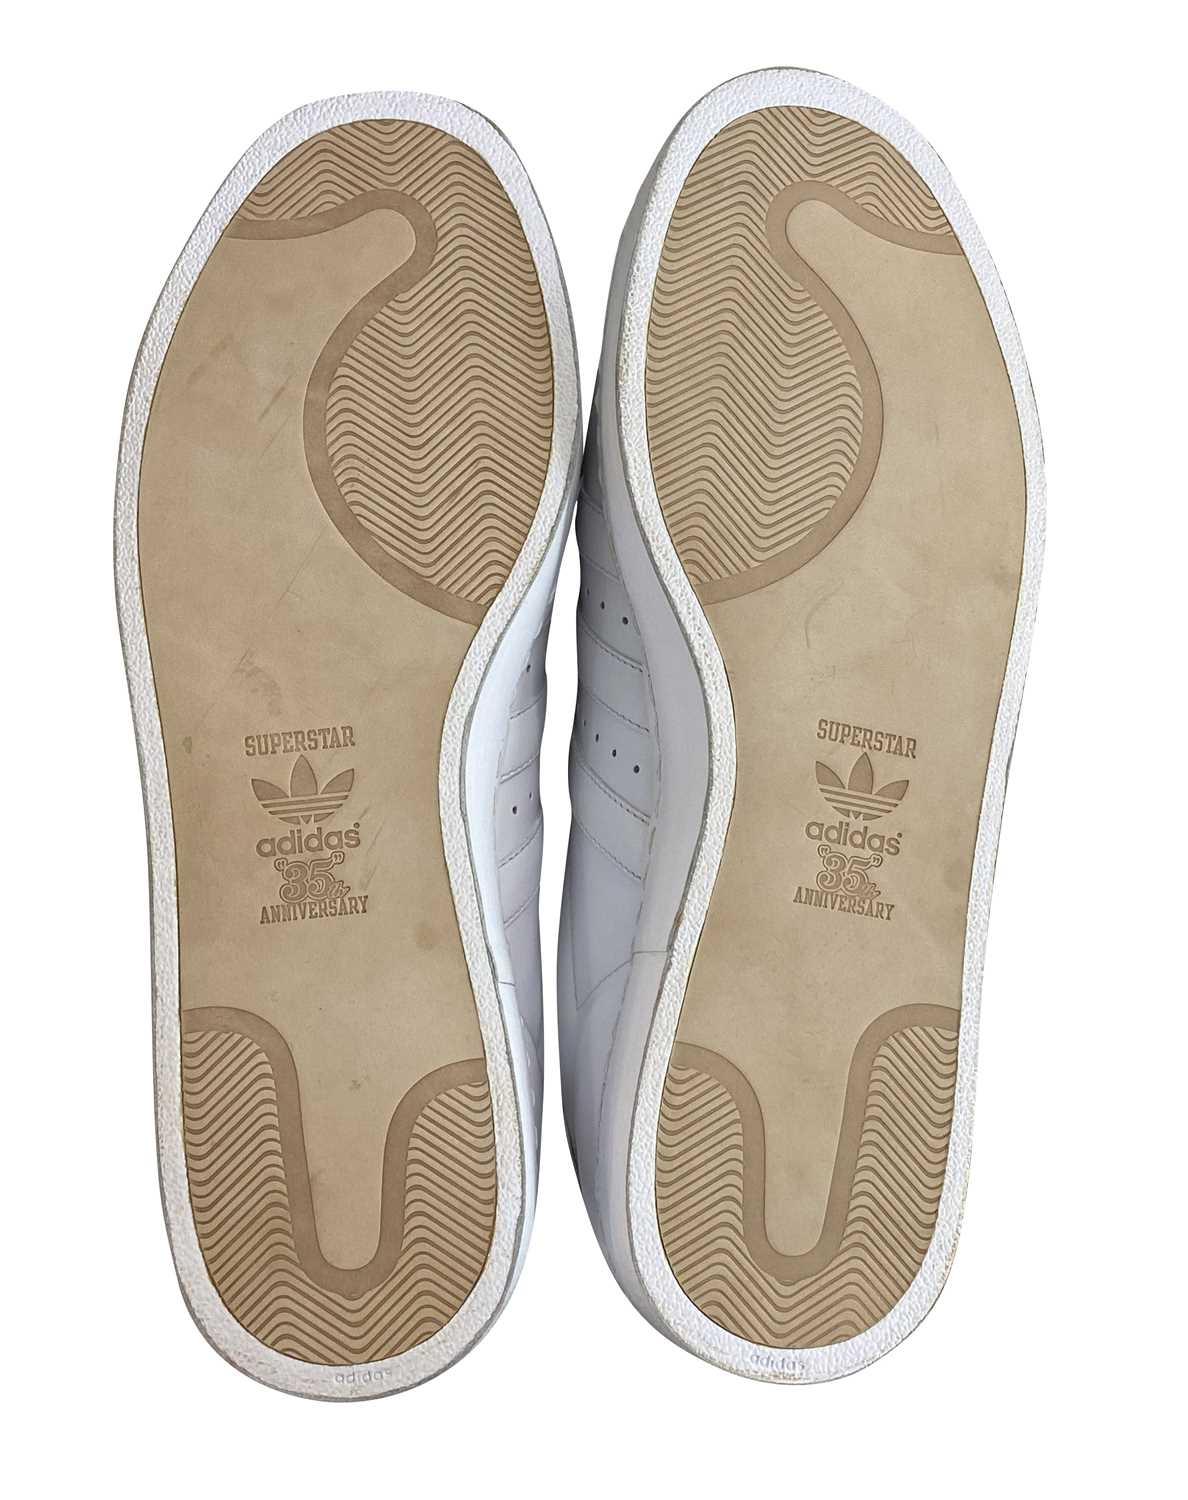 ADIDAS 35TH ANNIVERSARY LIMITED EDITION TRAINERS - Image 5 of 5